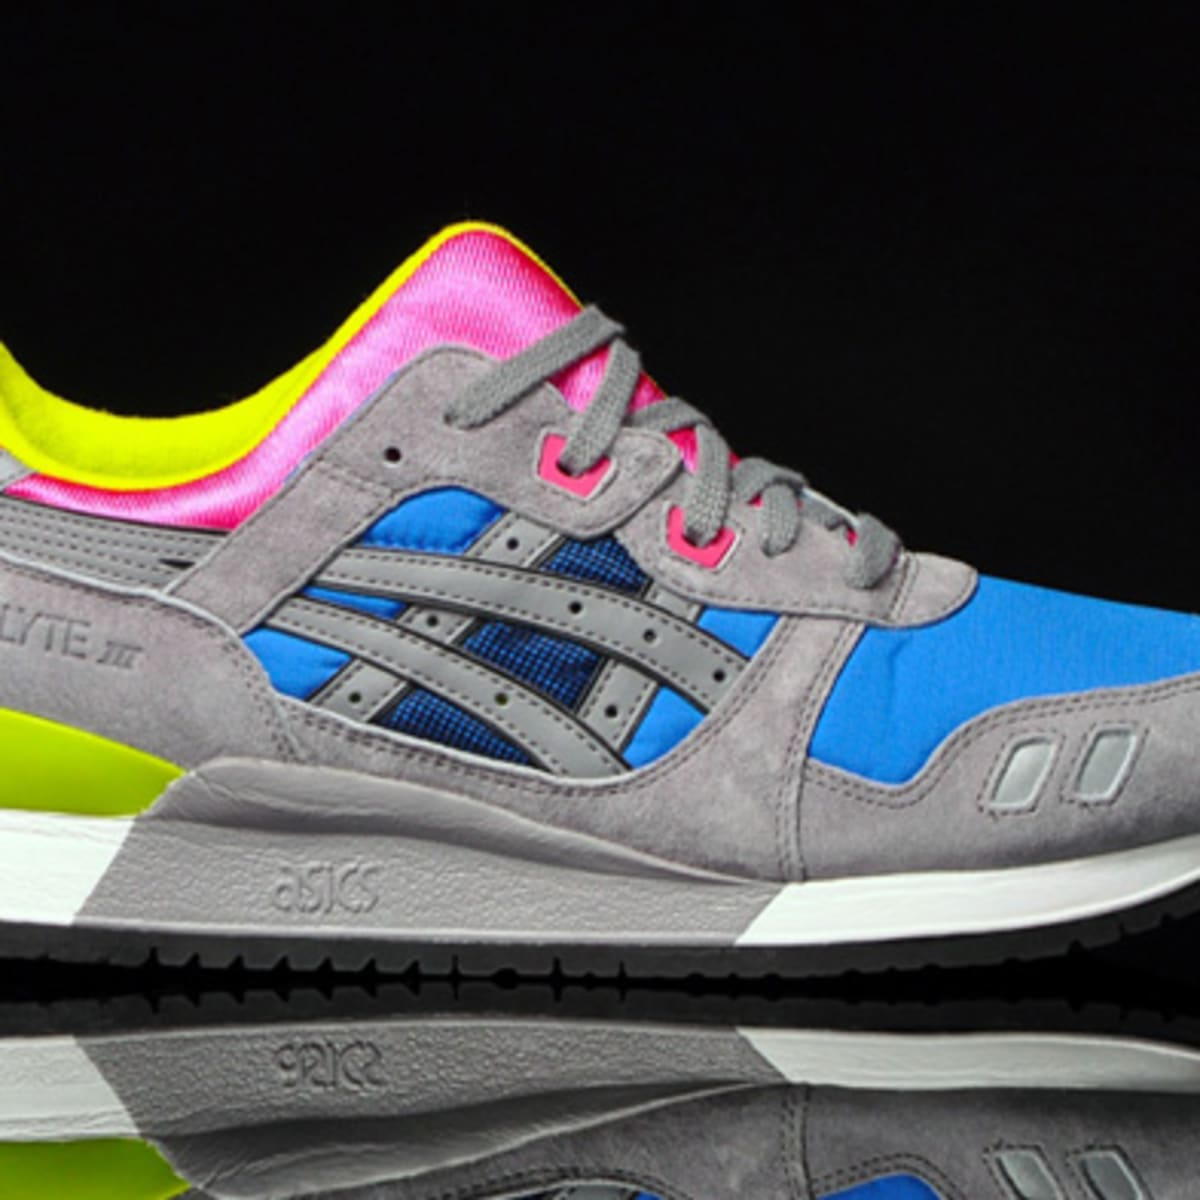 exceso Molestar análisis  ASICS Gel Lyte III - Grey-Royal Blue-Pink | Available - Freshness Mag